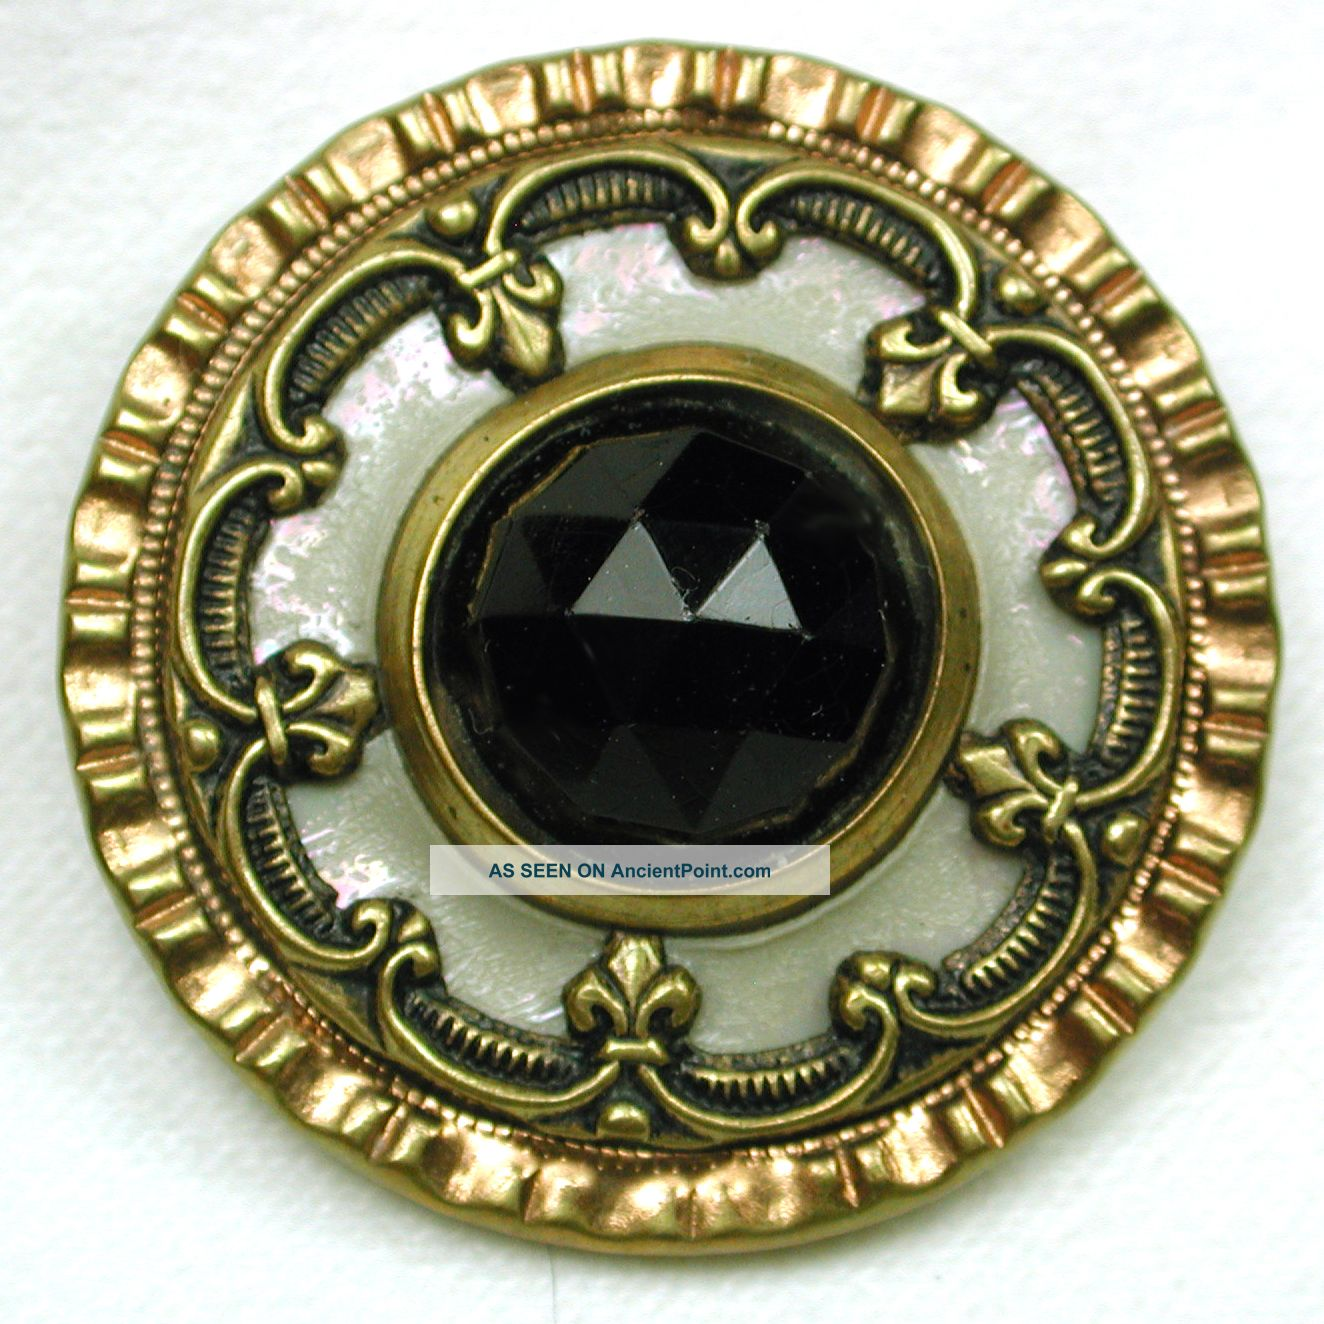 Antique Jewel Button Faceted Glass Center W/ Celluloid Liner & Brass Border Buttons photo